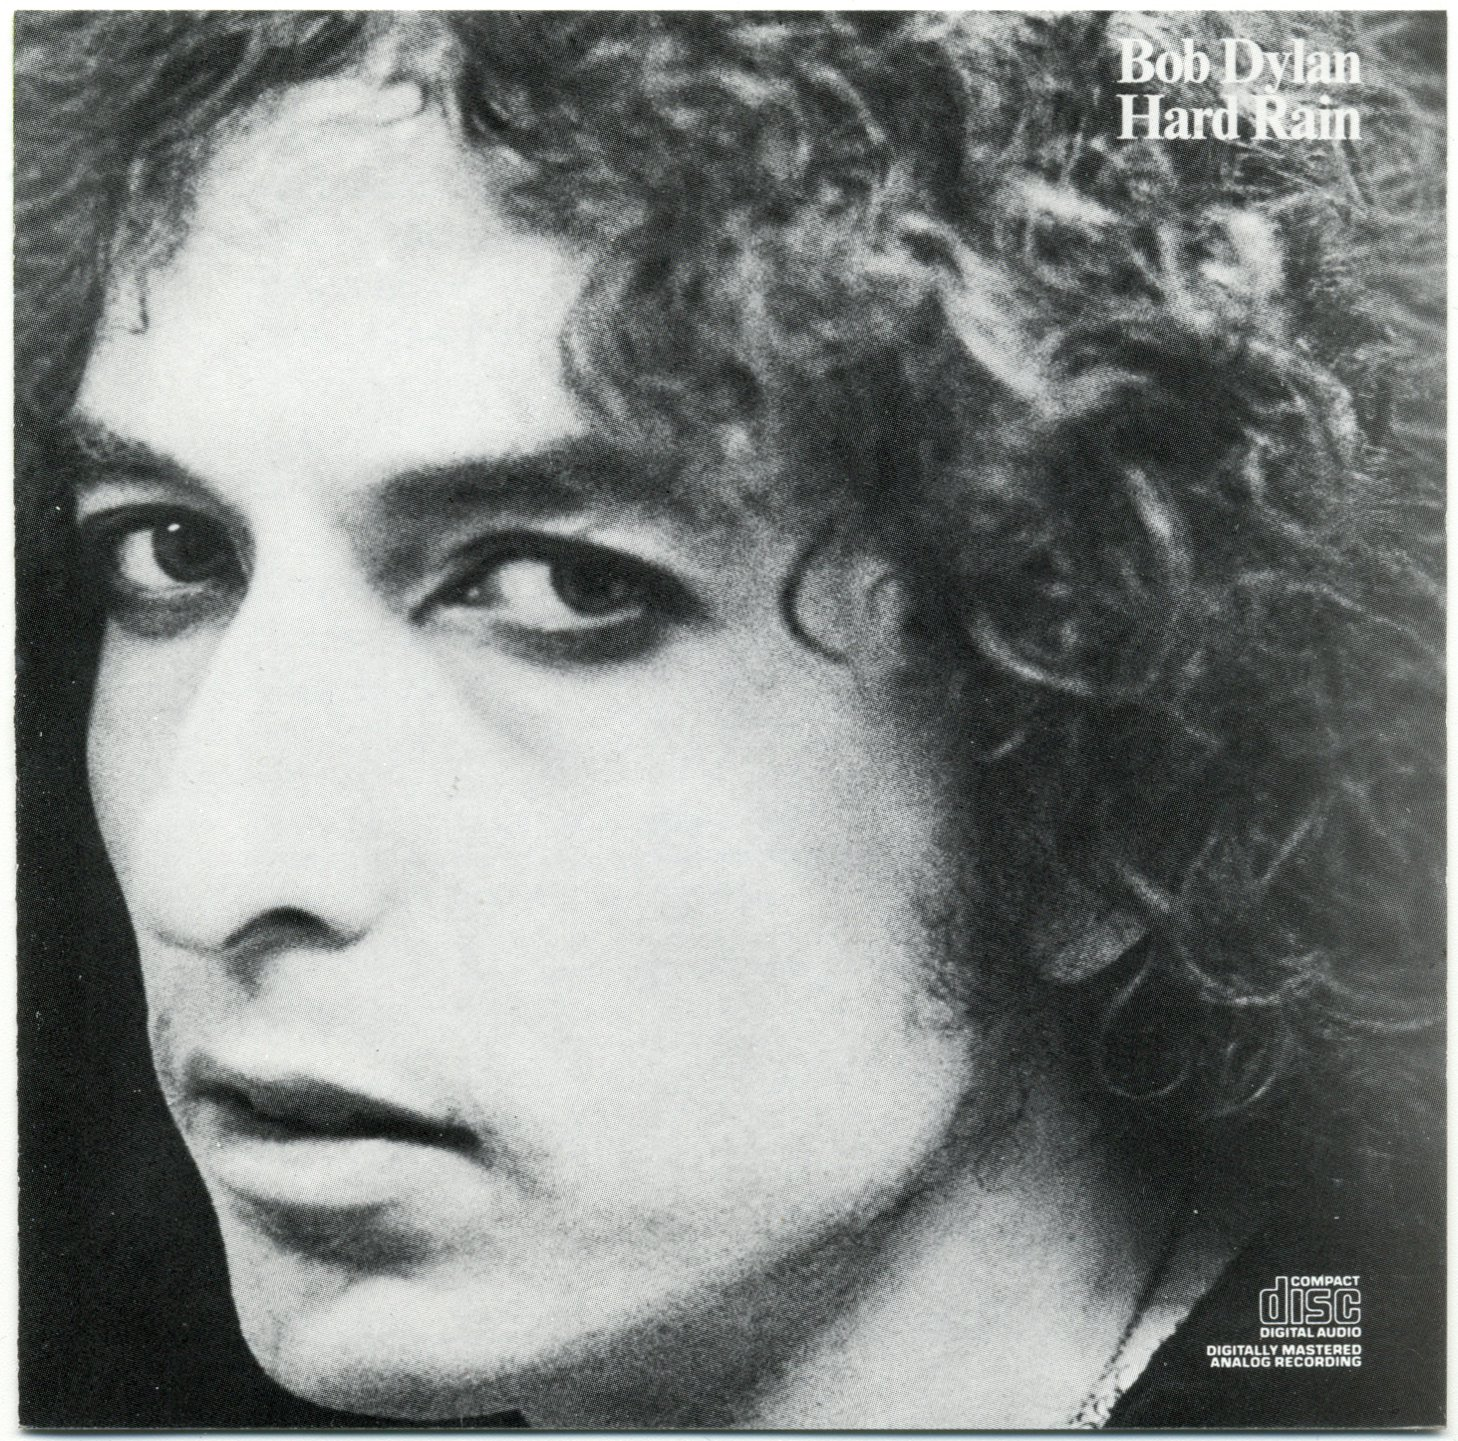 Bob Dylan Hard Rain CD